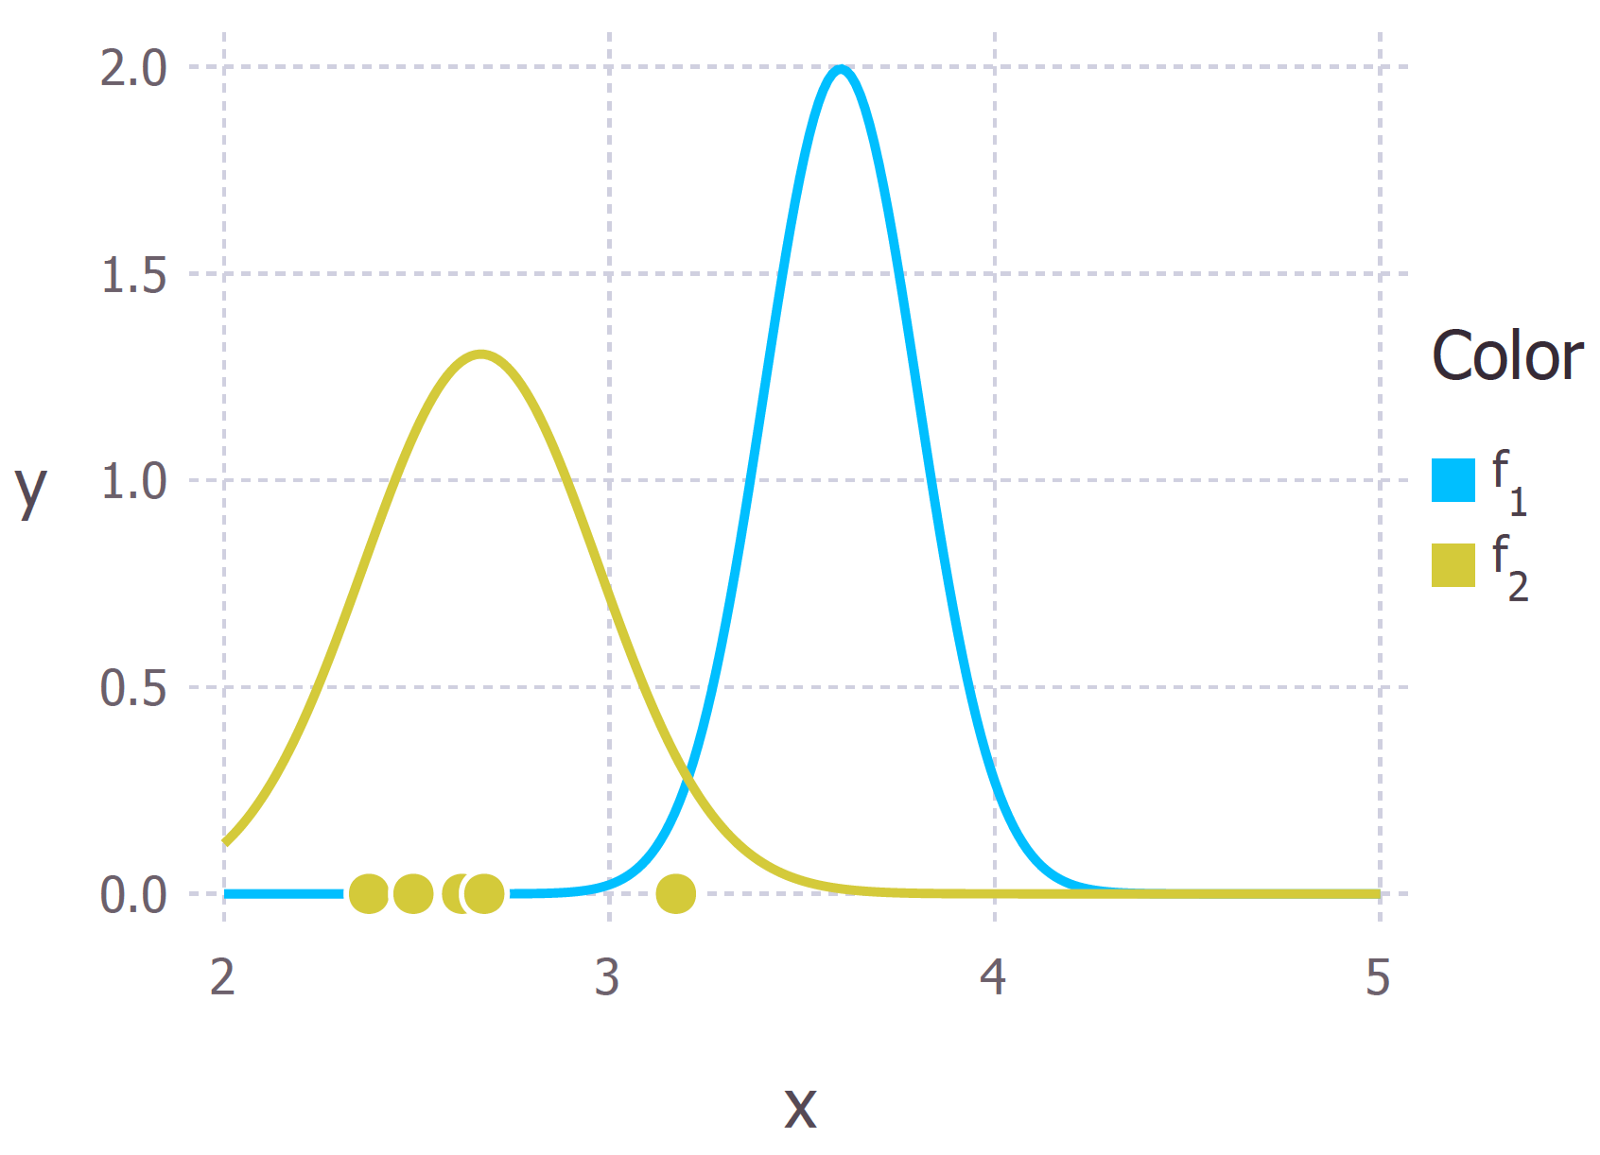 Probability Concepts Explained Bayesian Inference For Parameter Incase Anyone Is Interested In Fitting Some Here My Wiring Diagram Prior The Distance Of A Hydrogen Bond Blue And Likelihood Distribution Gold Derived From 5 Data Points